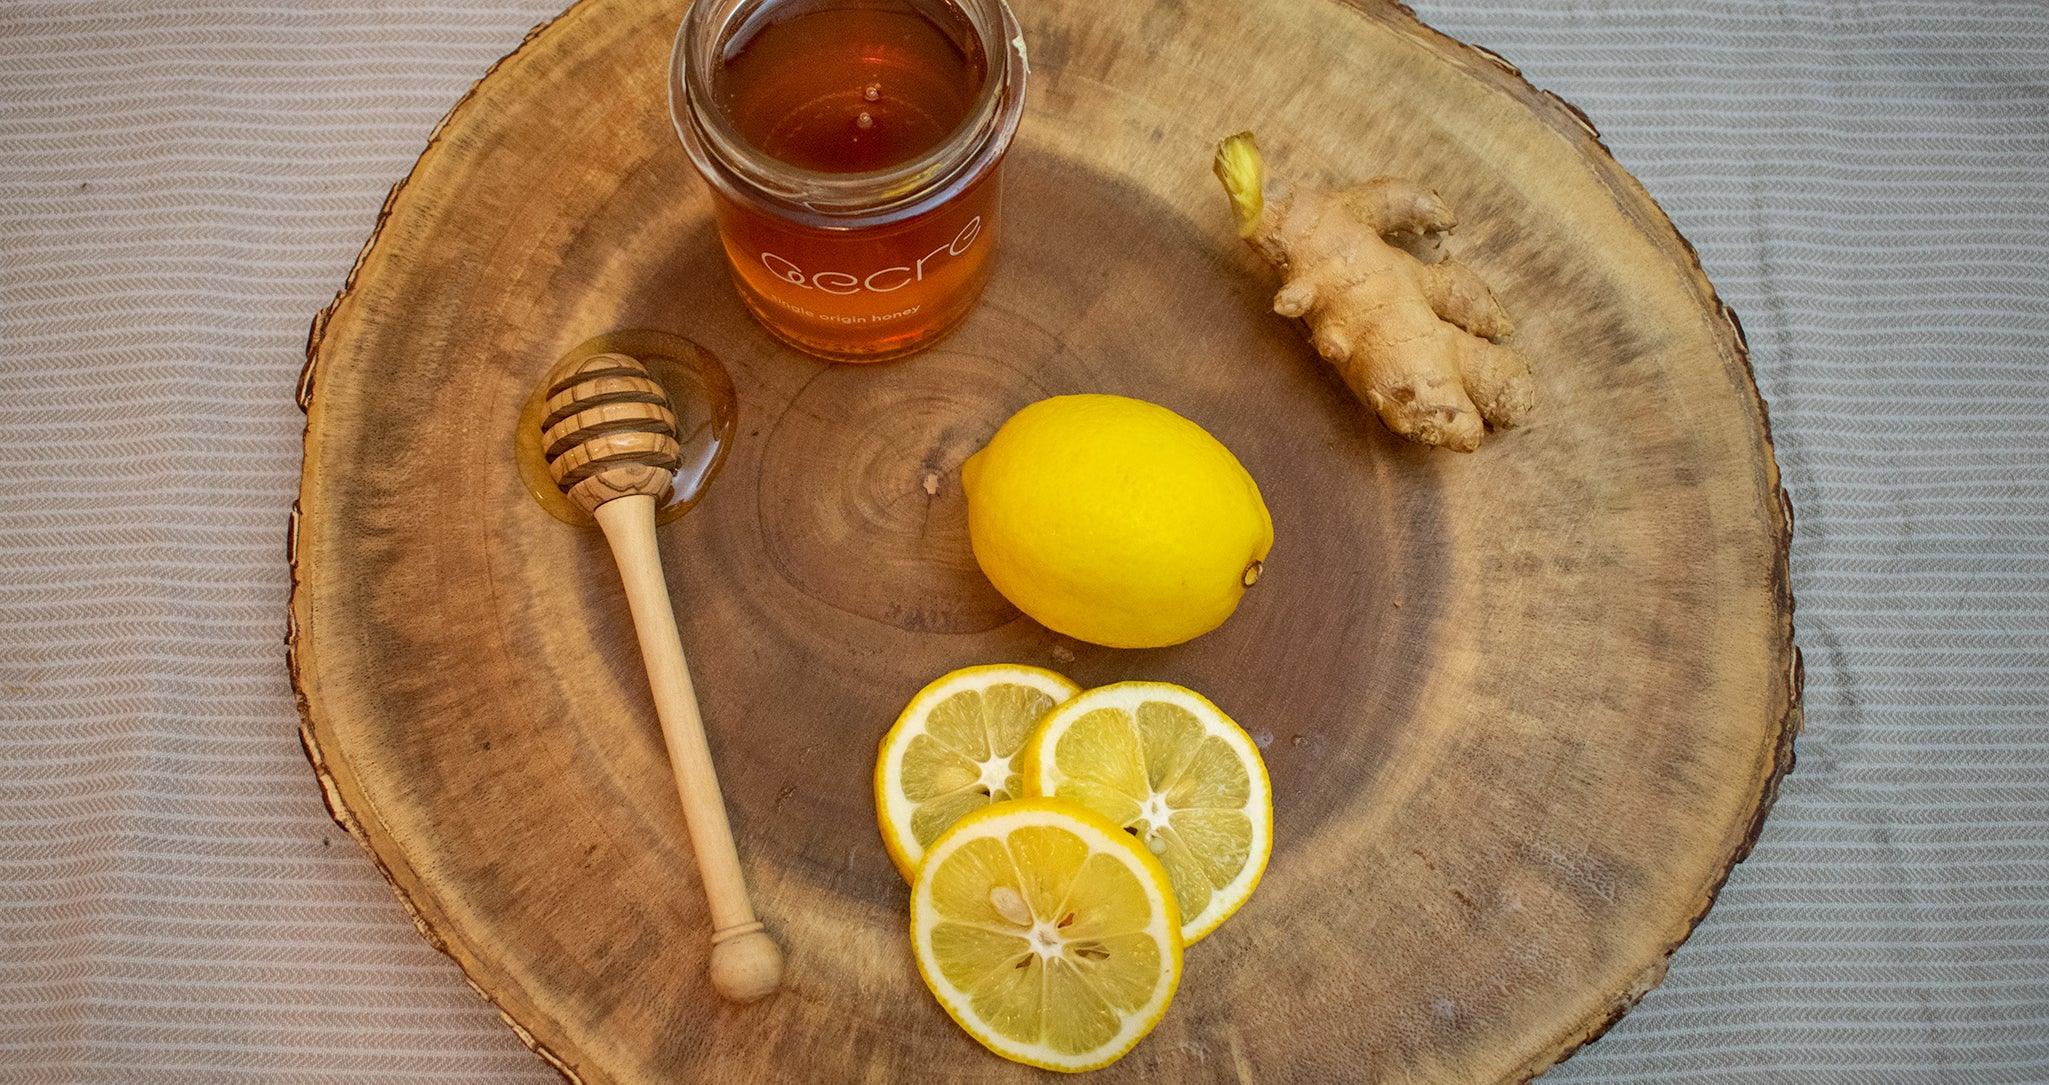 Honey and Ginger Drink - Cold remedy